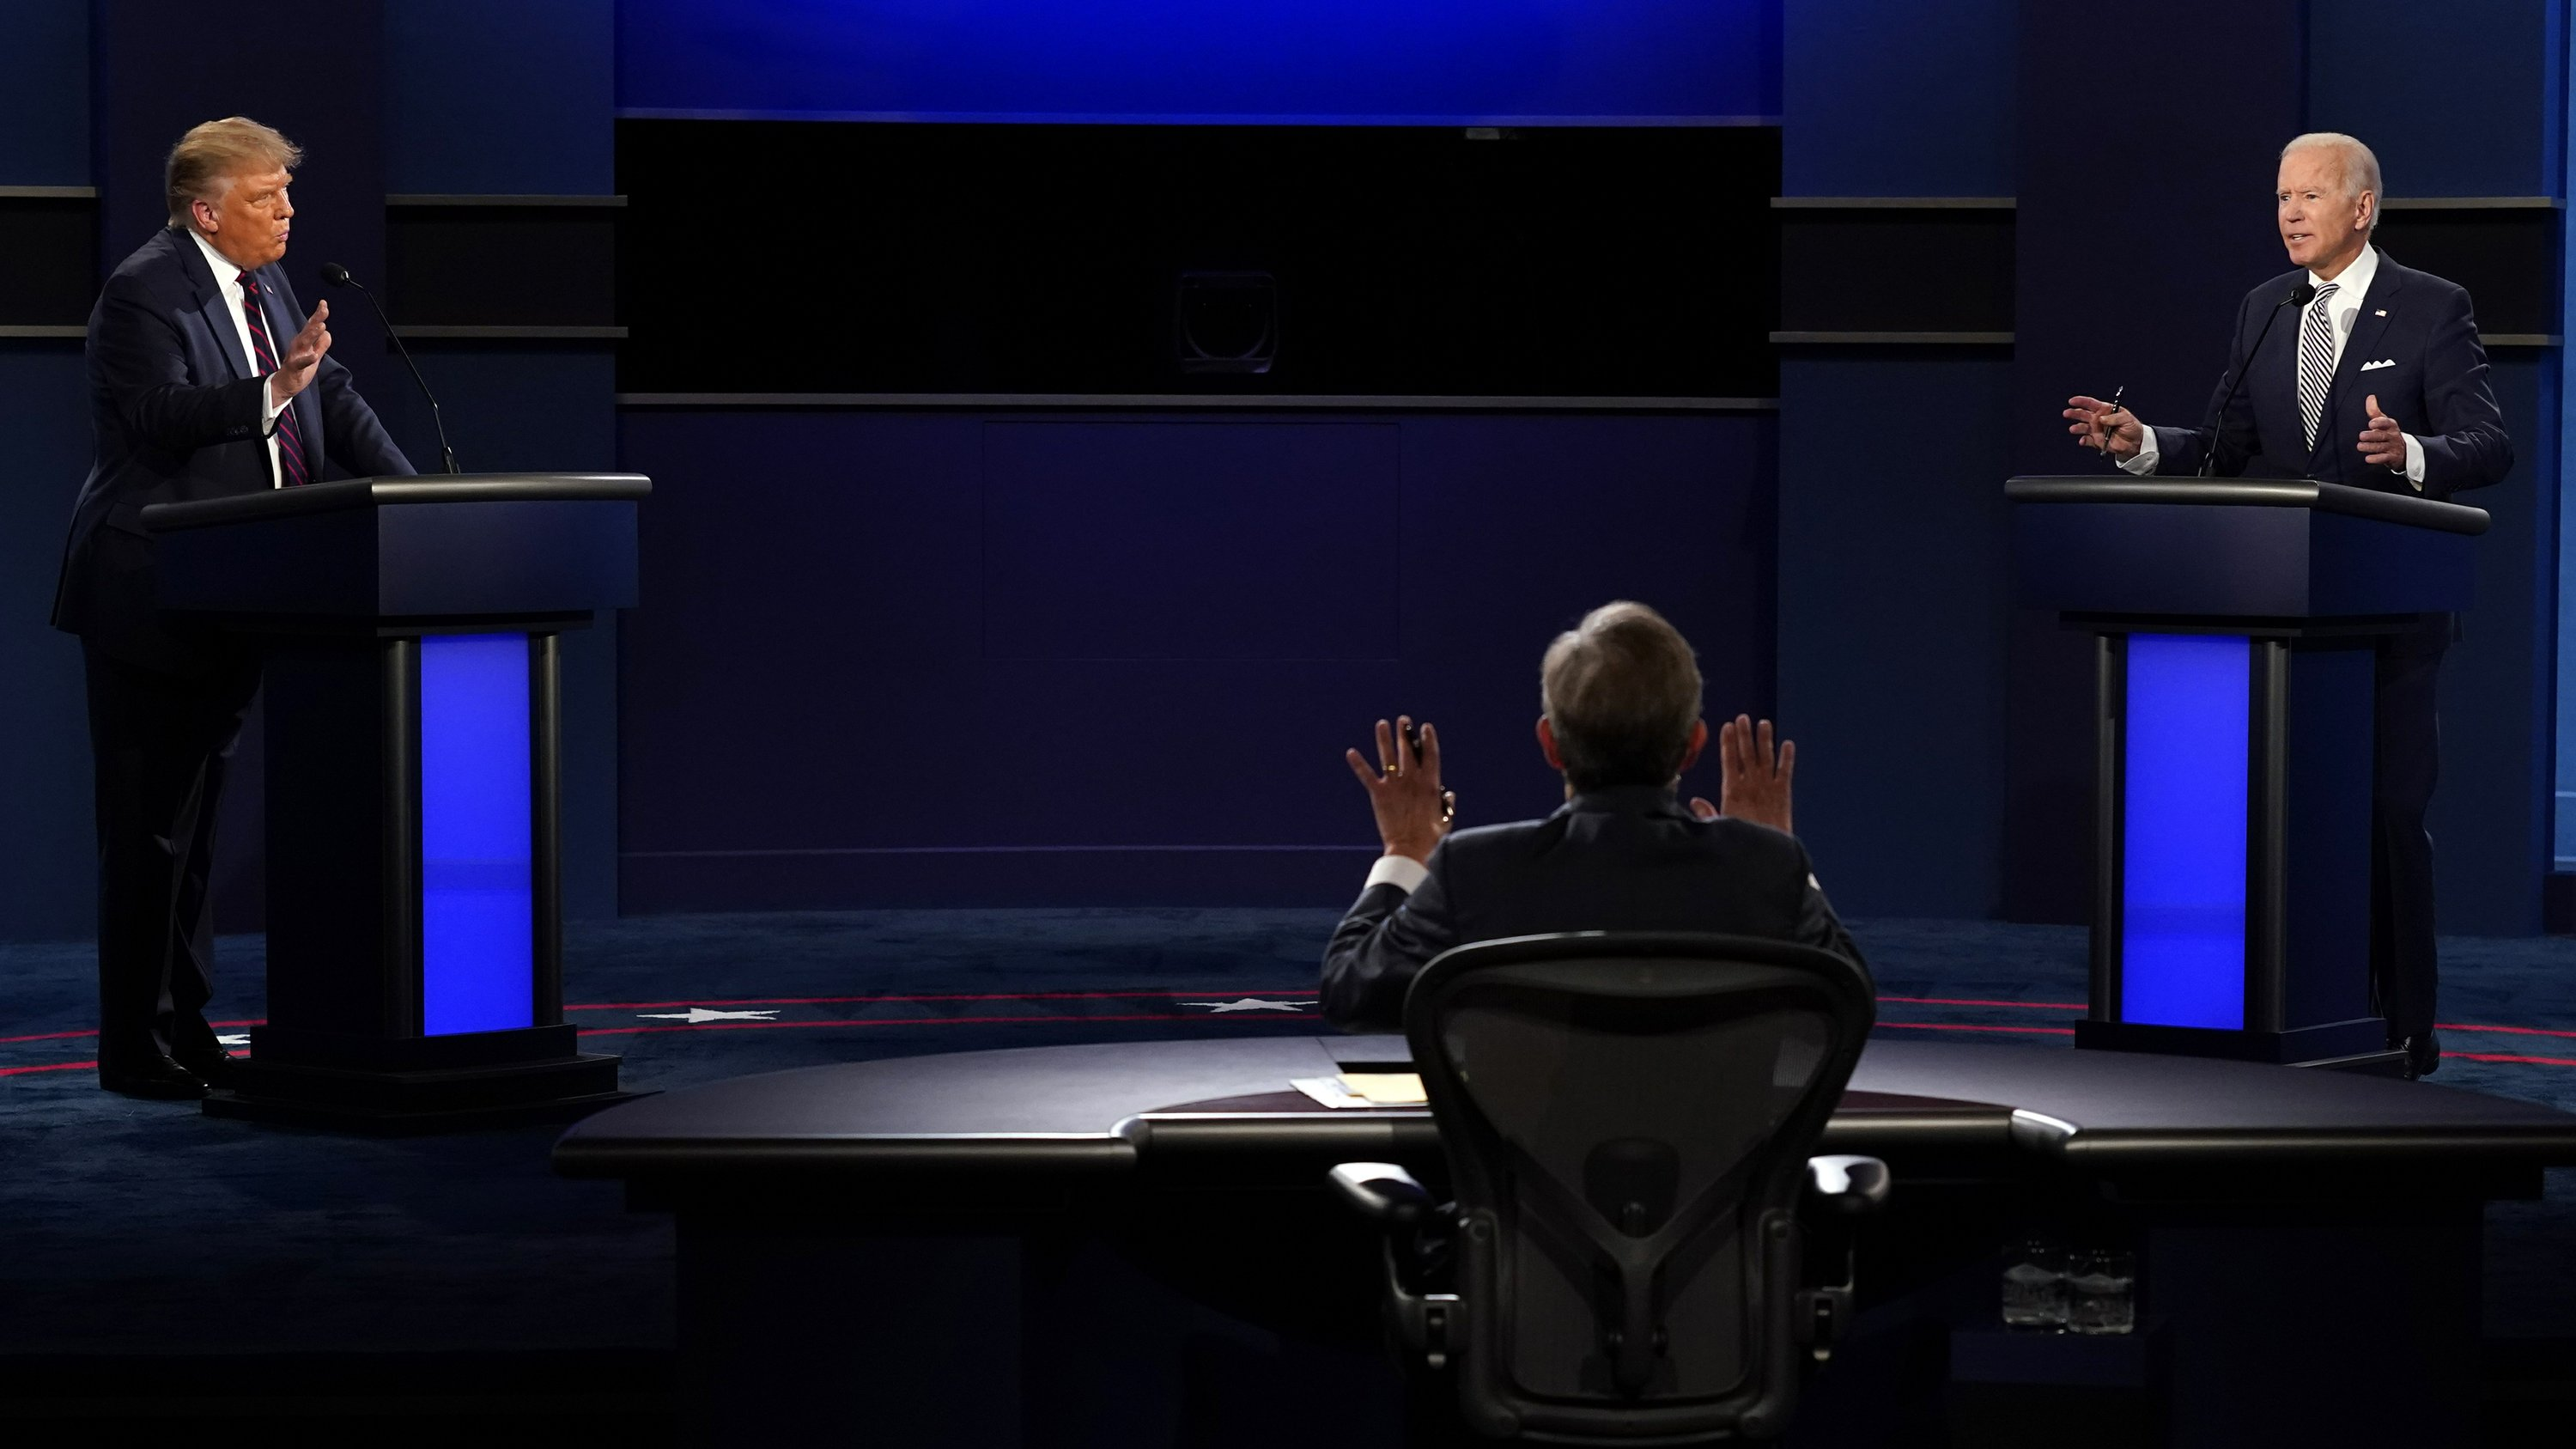 The Latest: Debate commission adopts new rules to mute mics